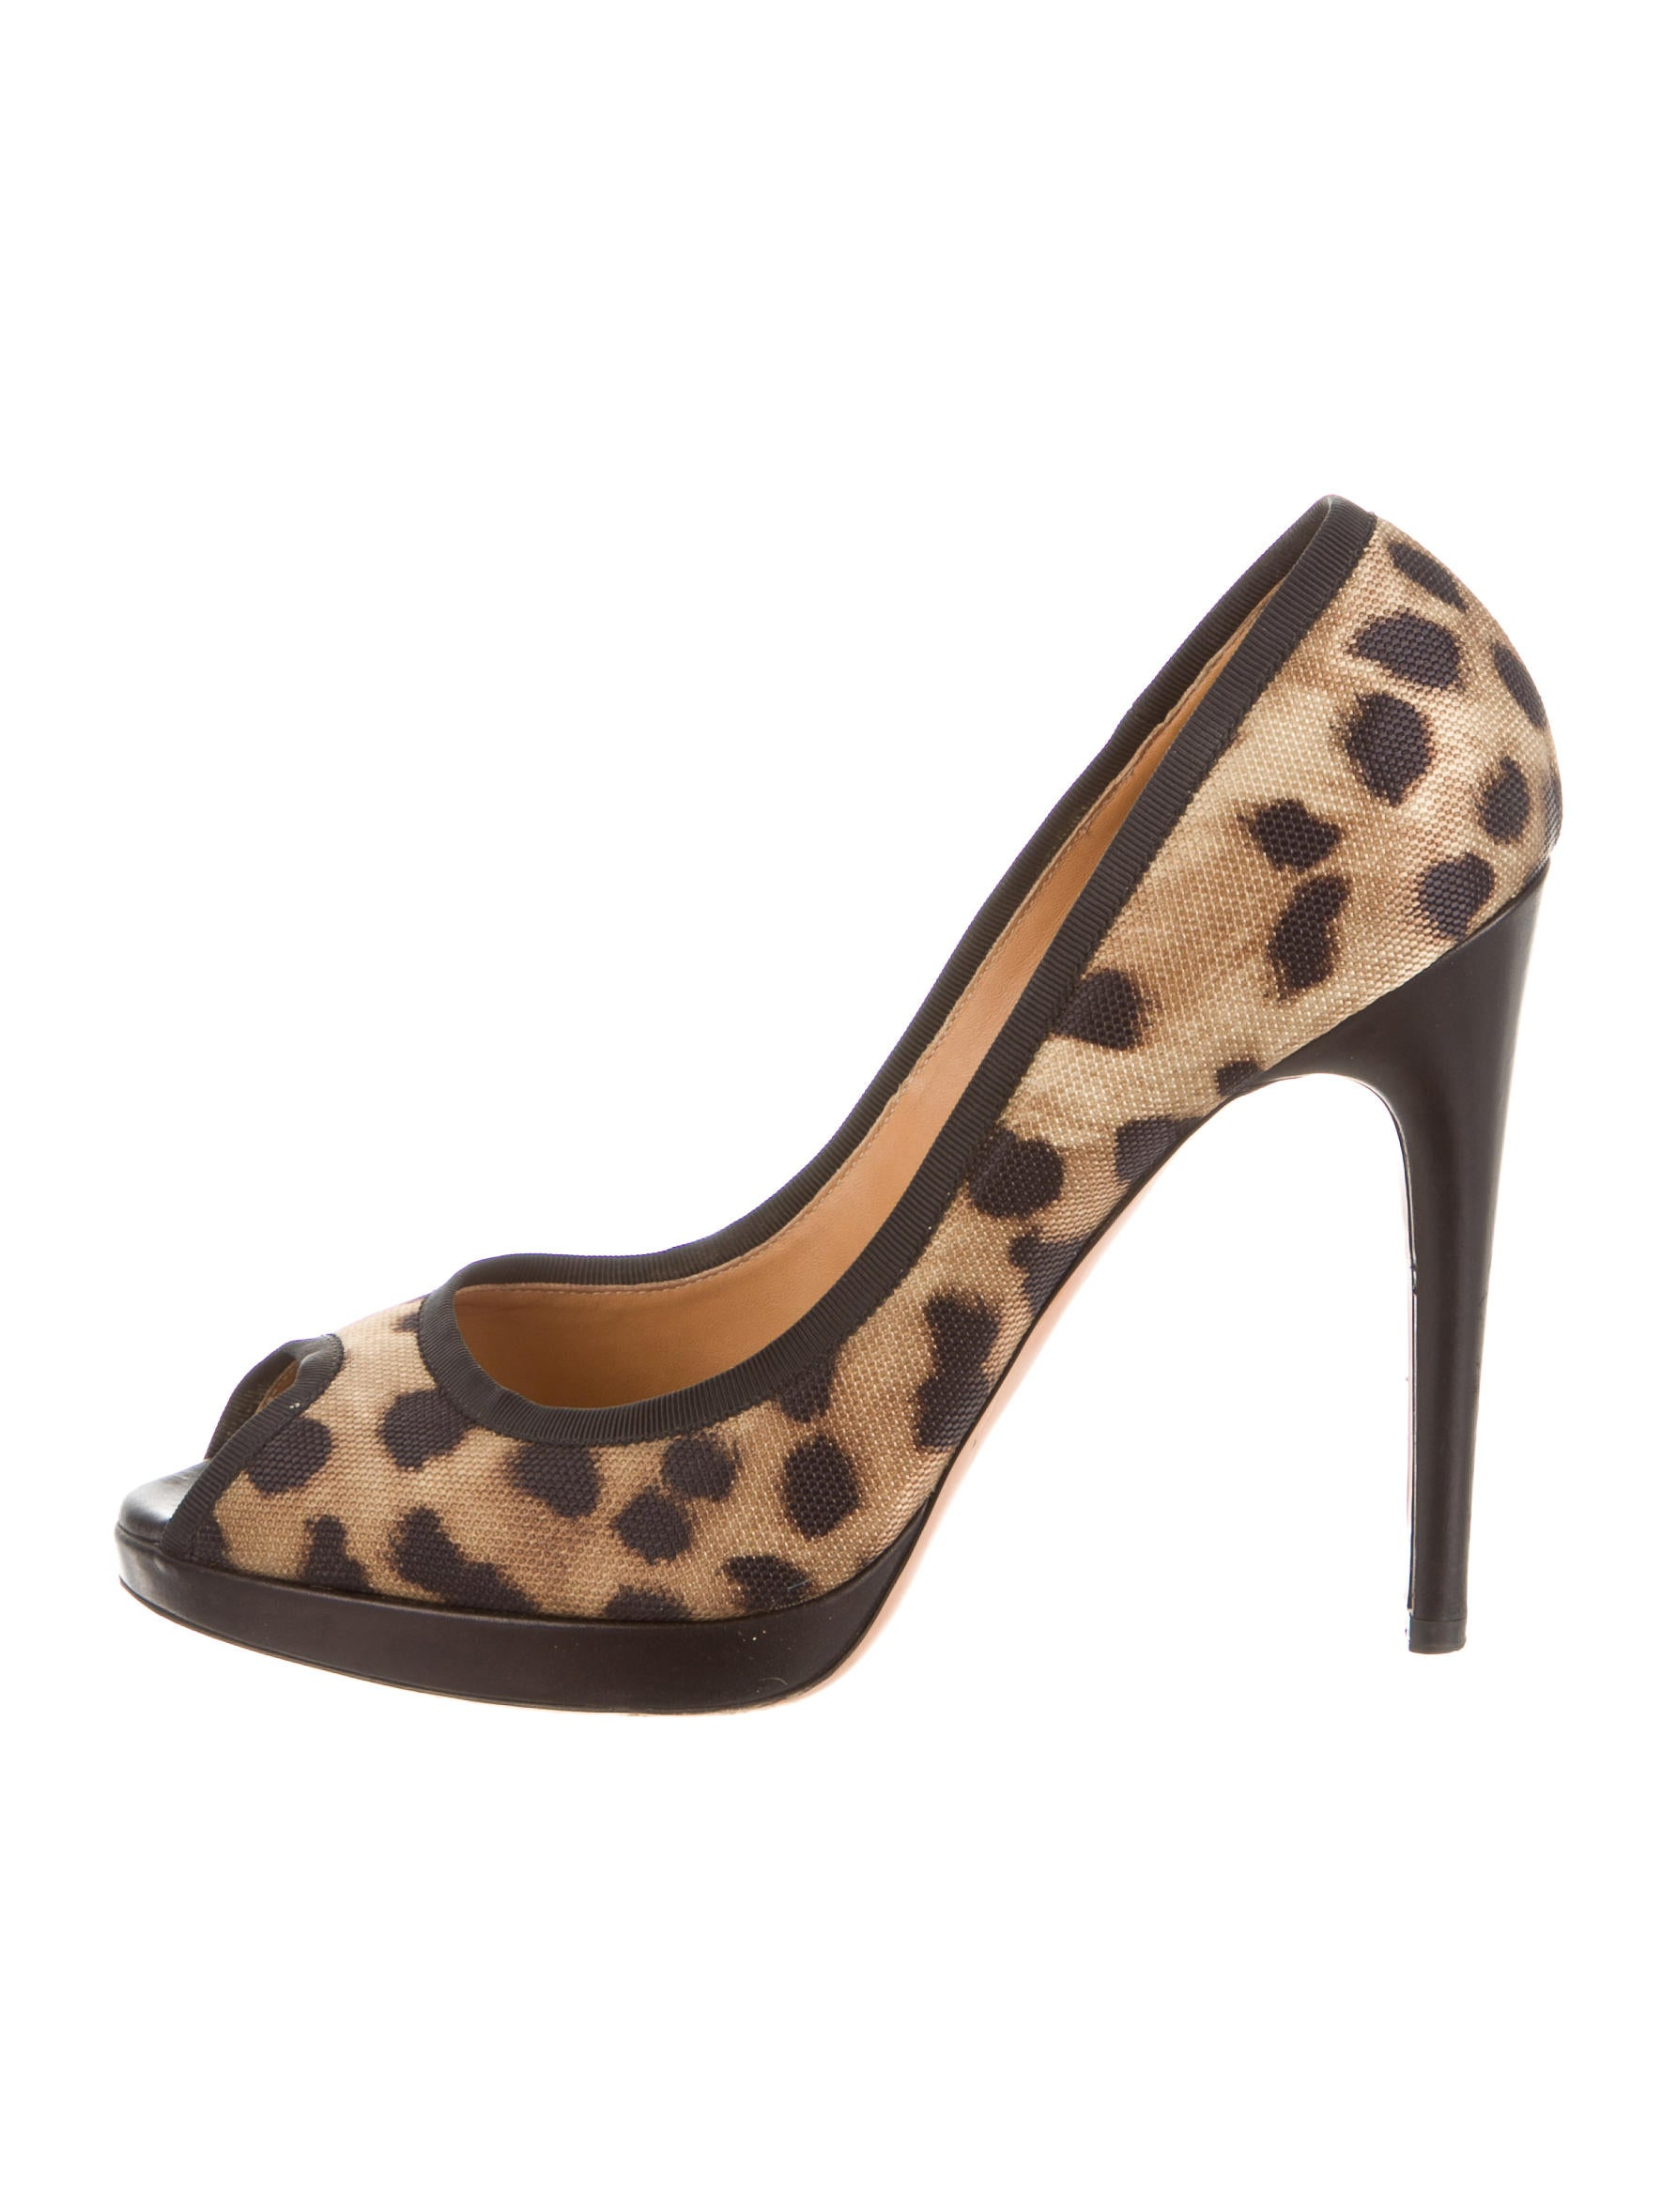 Casadei Leopard Peep-Toe Pumps from china free shipping oPpDolXvR